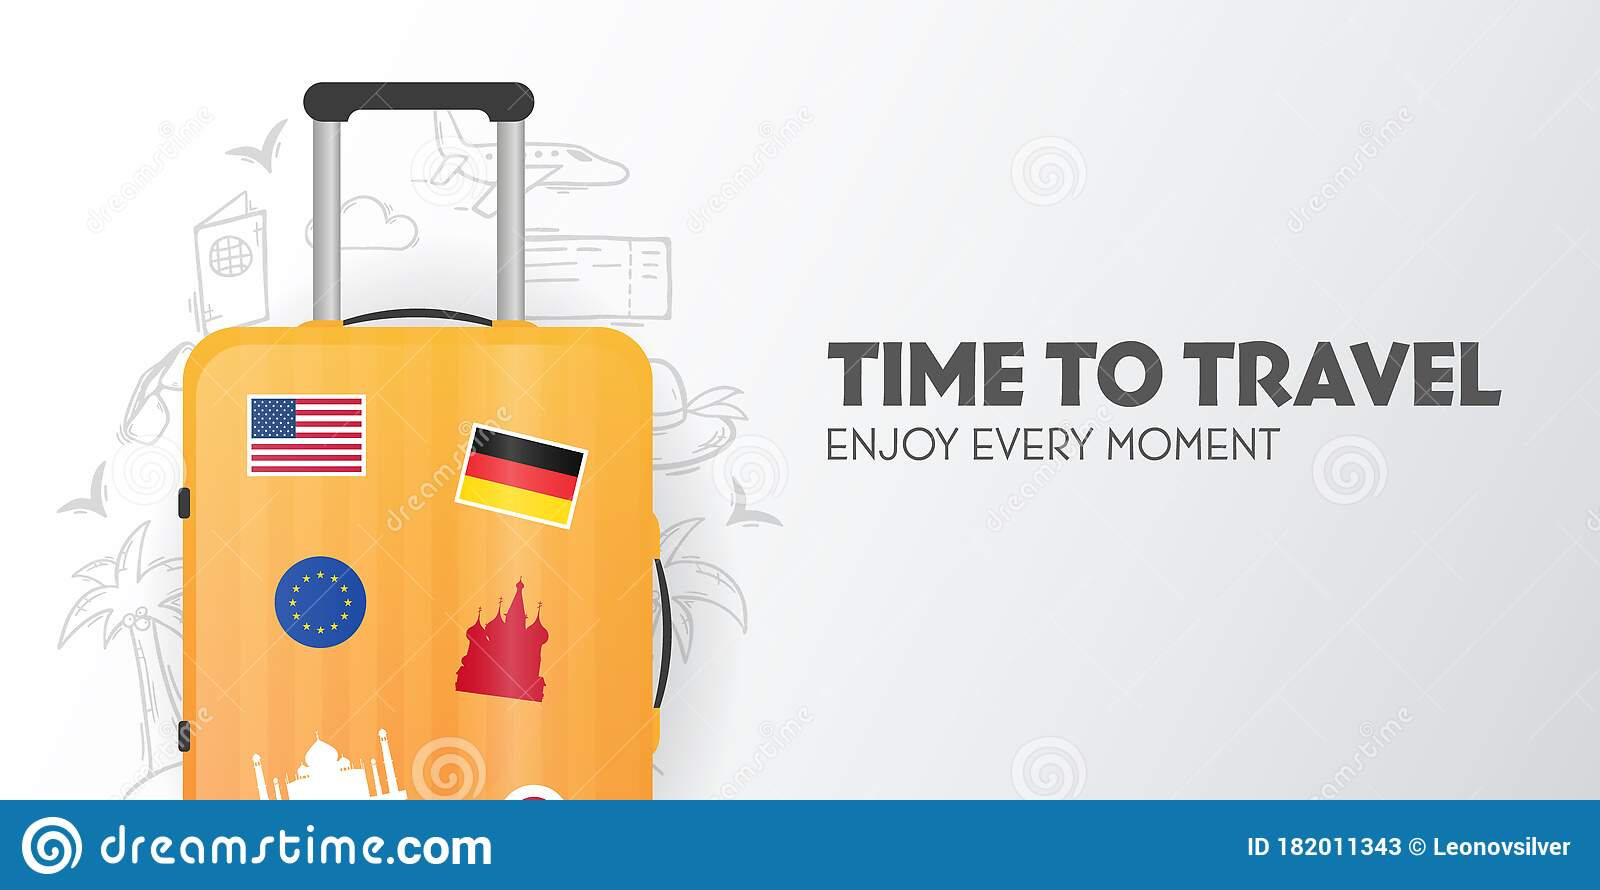 Time To Travel Banner With Travel Bag Vacation Road Trip Tourism Journey Travelling Illustration Modern Flat Stock Vector Illustration Of Global Background 182011343